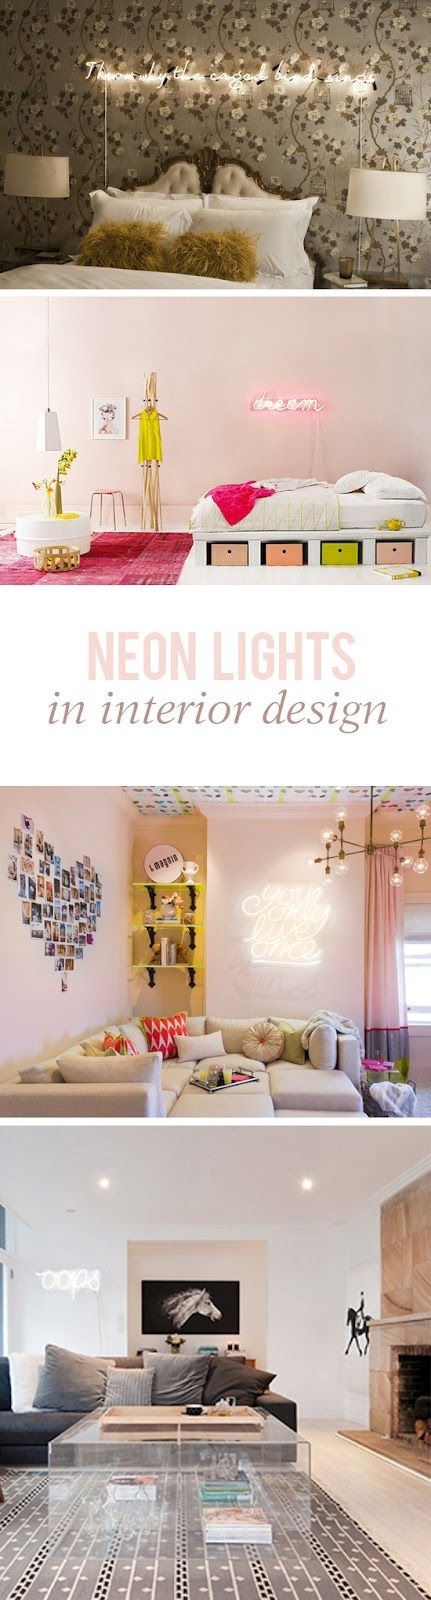 Olga Aguilar: Currently Loving: NEON LIGHTS